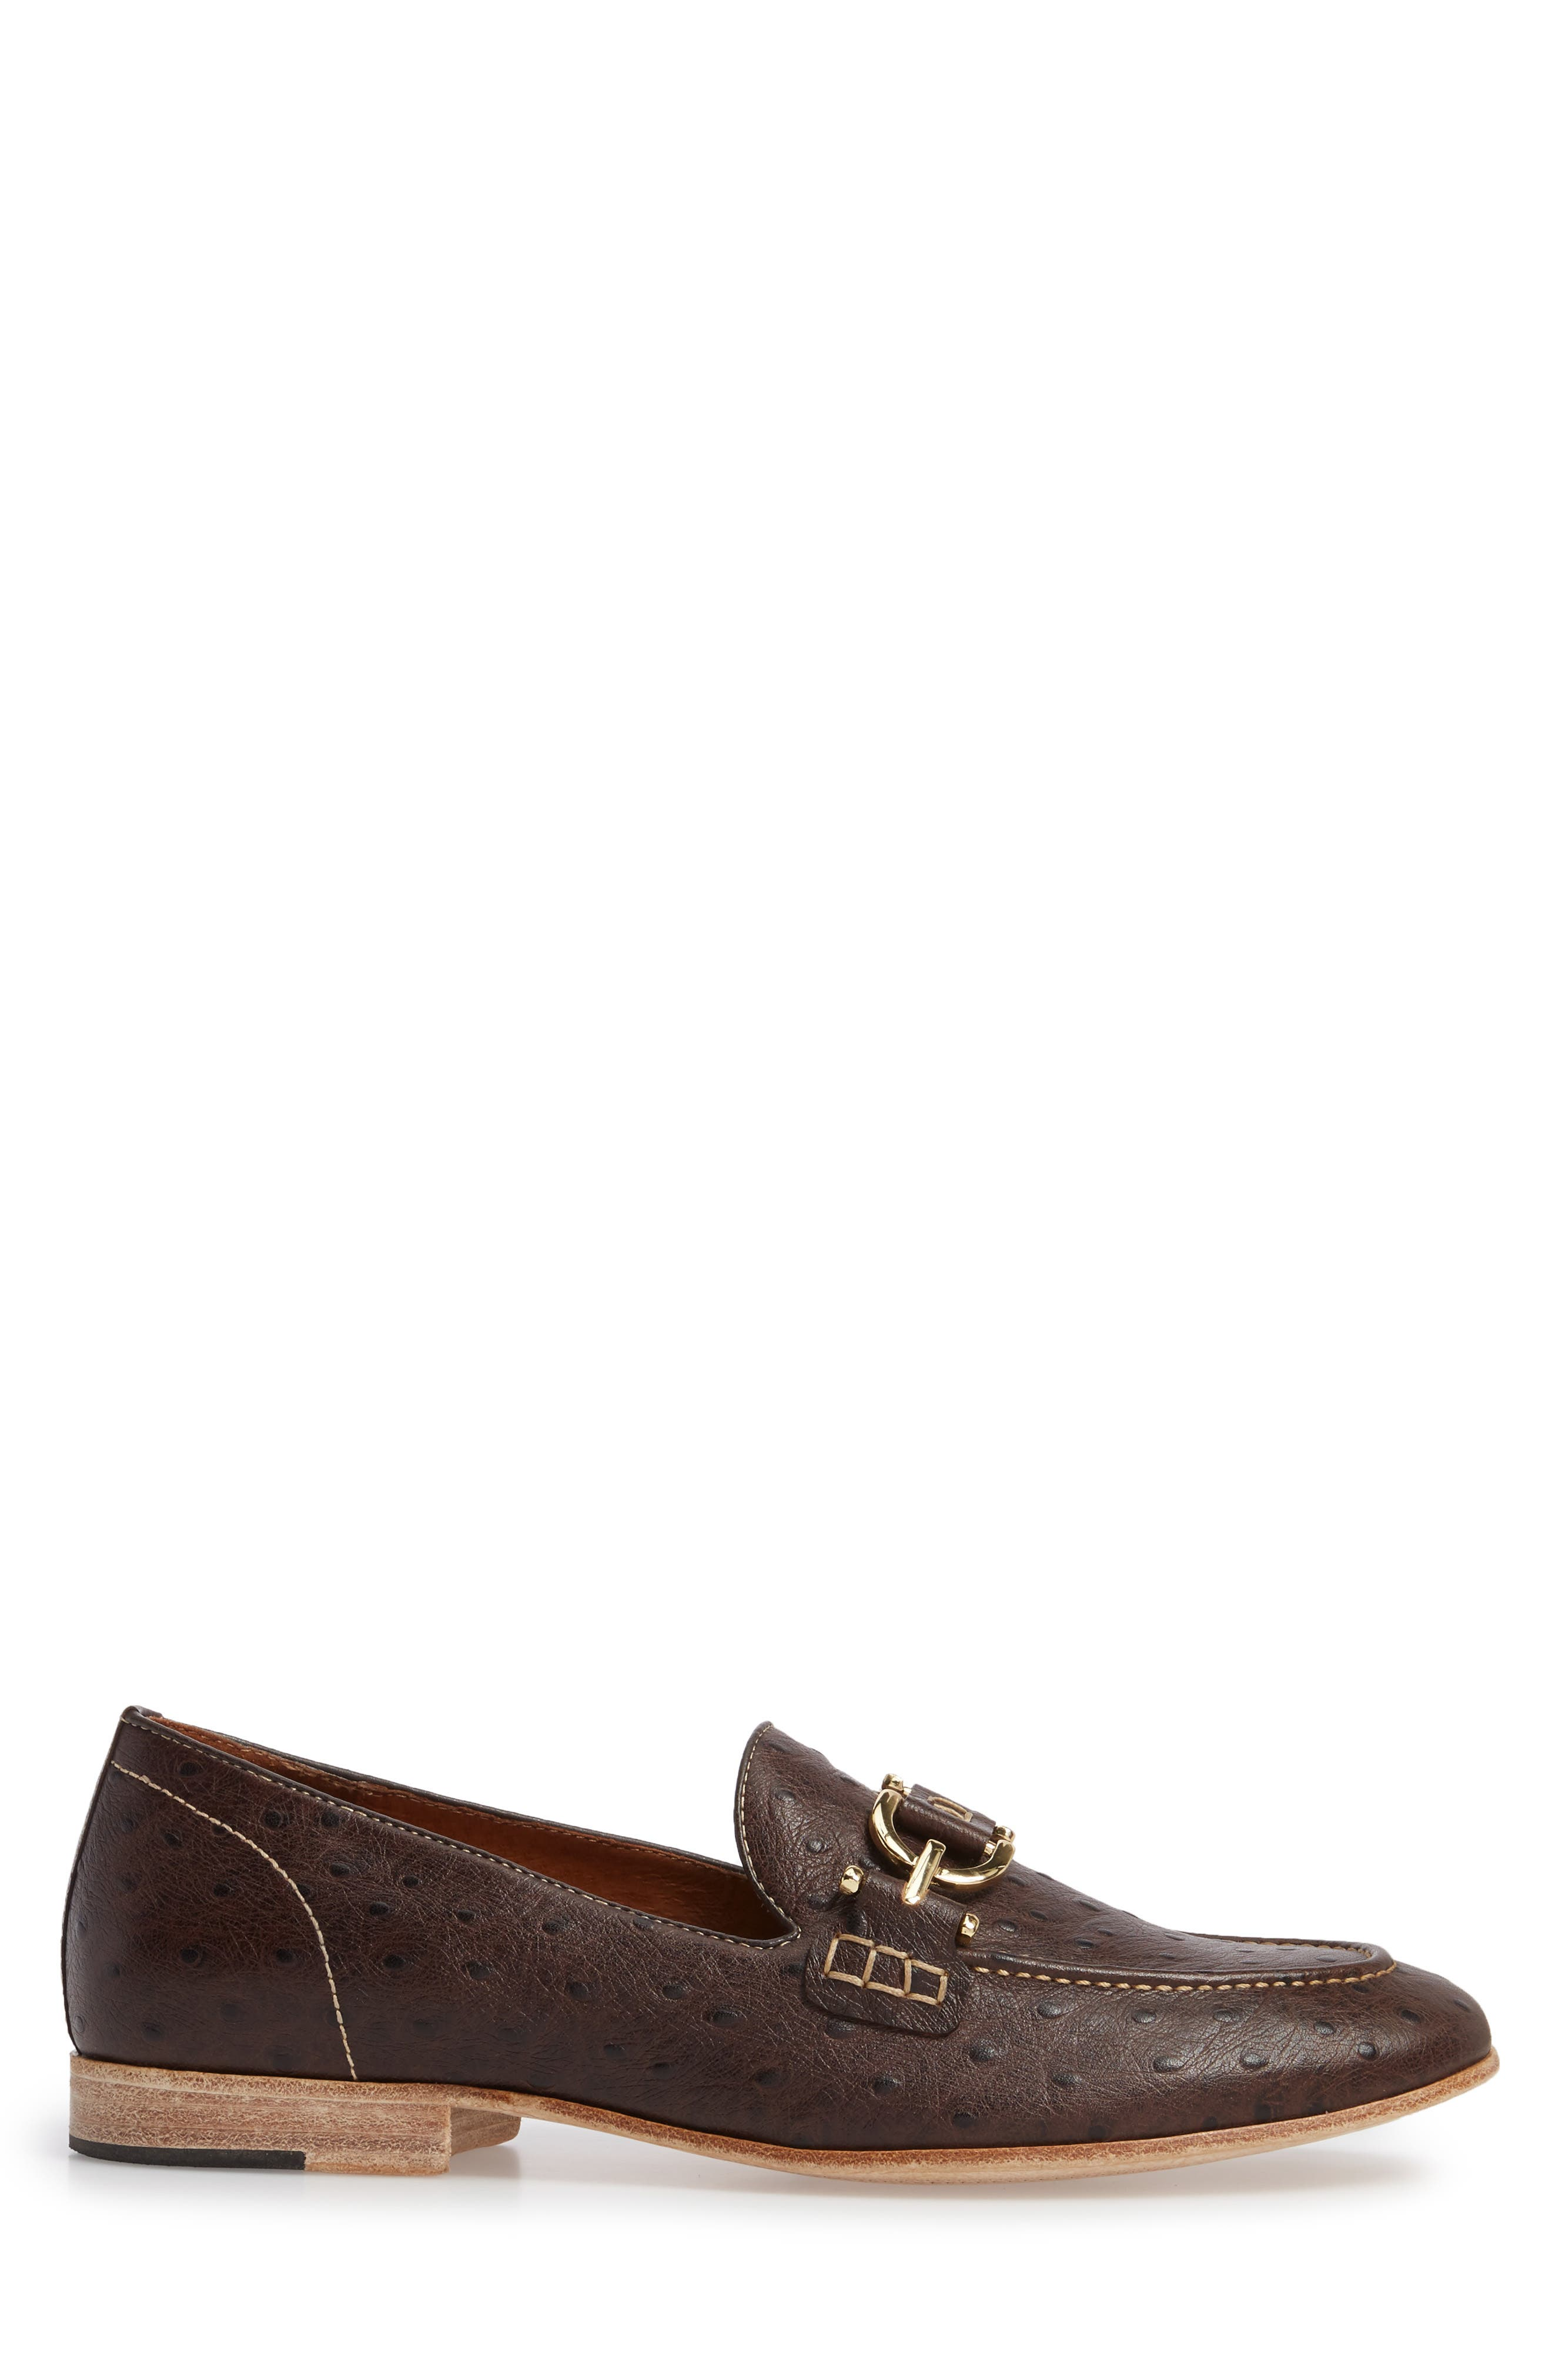 Moritz Apron Toe Bit Loafer,                             Alternate thumbnail 3, color,                             200